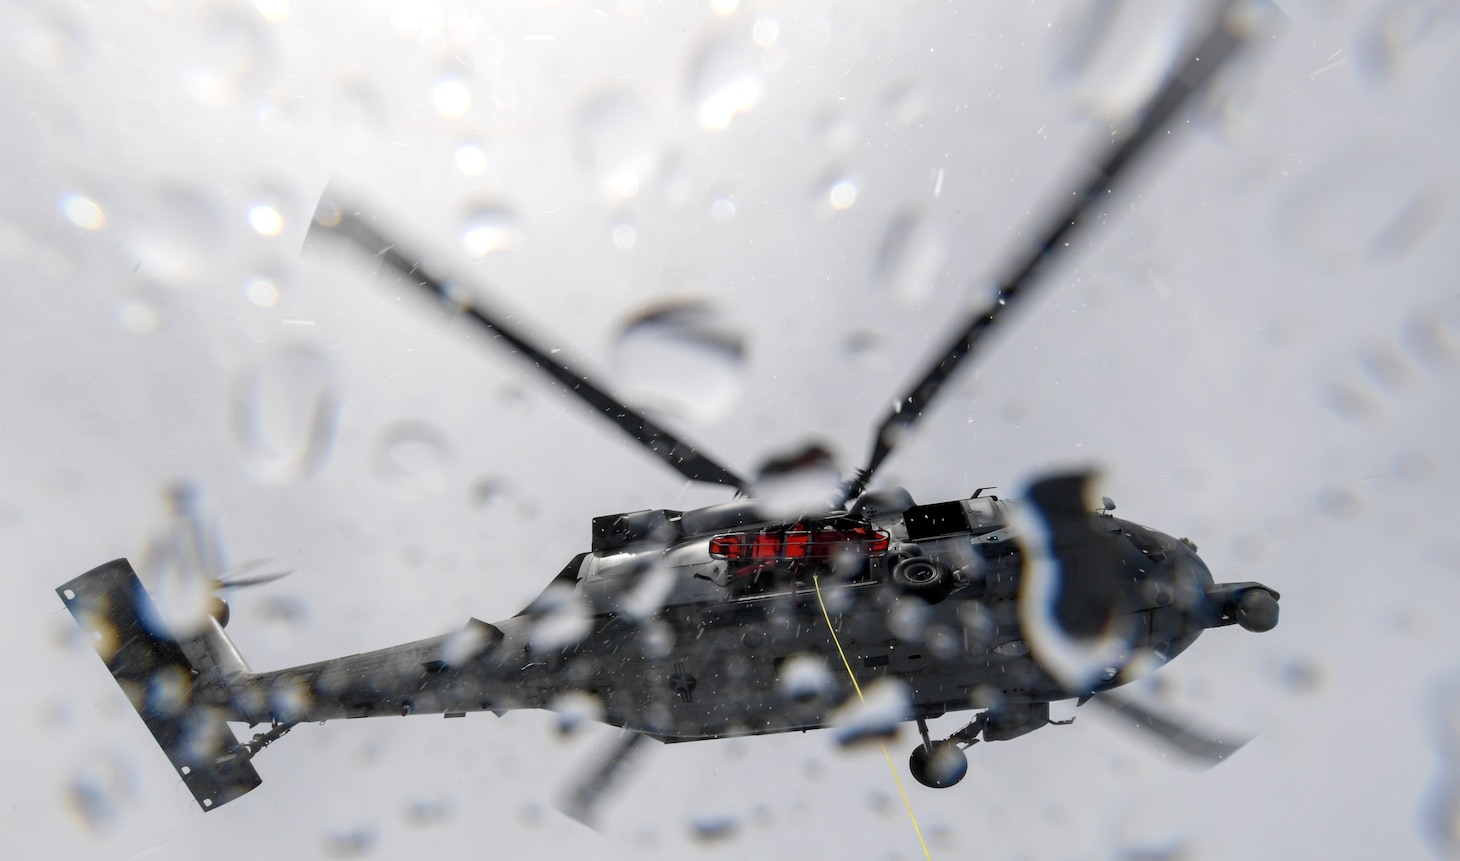 An MH-60S Sea Hawk helicopter, assigned to Helicopter Sea Combat Squadron (HSC) 25, hovers above a Mark VI patrol boat, assigned to Coastal Riverine Group 1, during a joint search and rescue exercise with U.S. Coast Guard Sector Guam, Feb. 23, 2018.